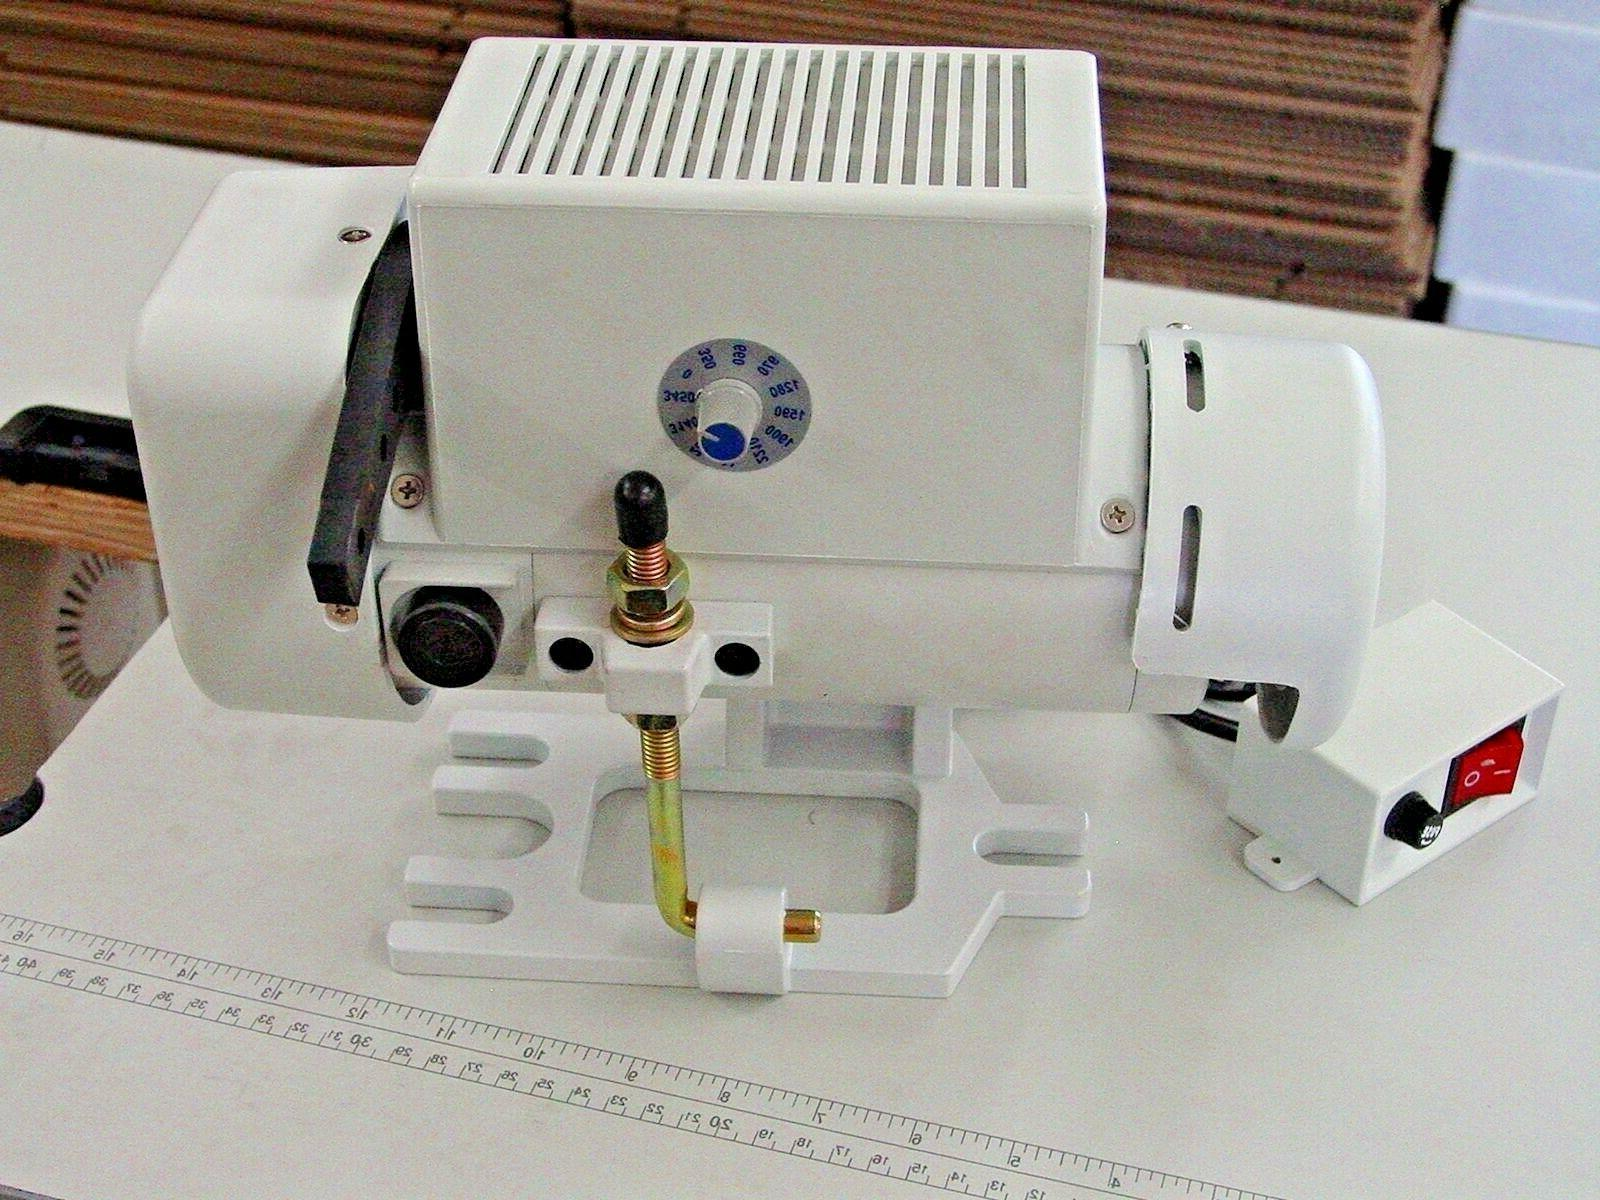 new industrial sewing machine servo motor fesm550